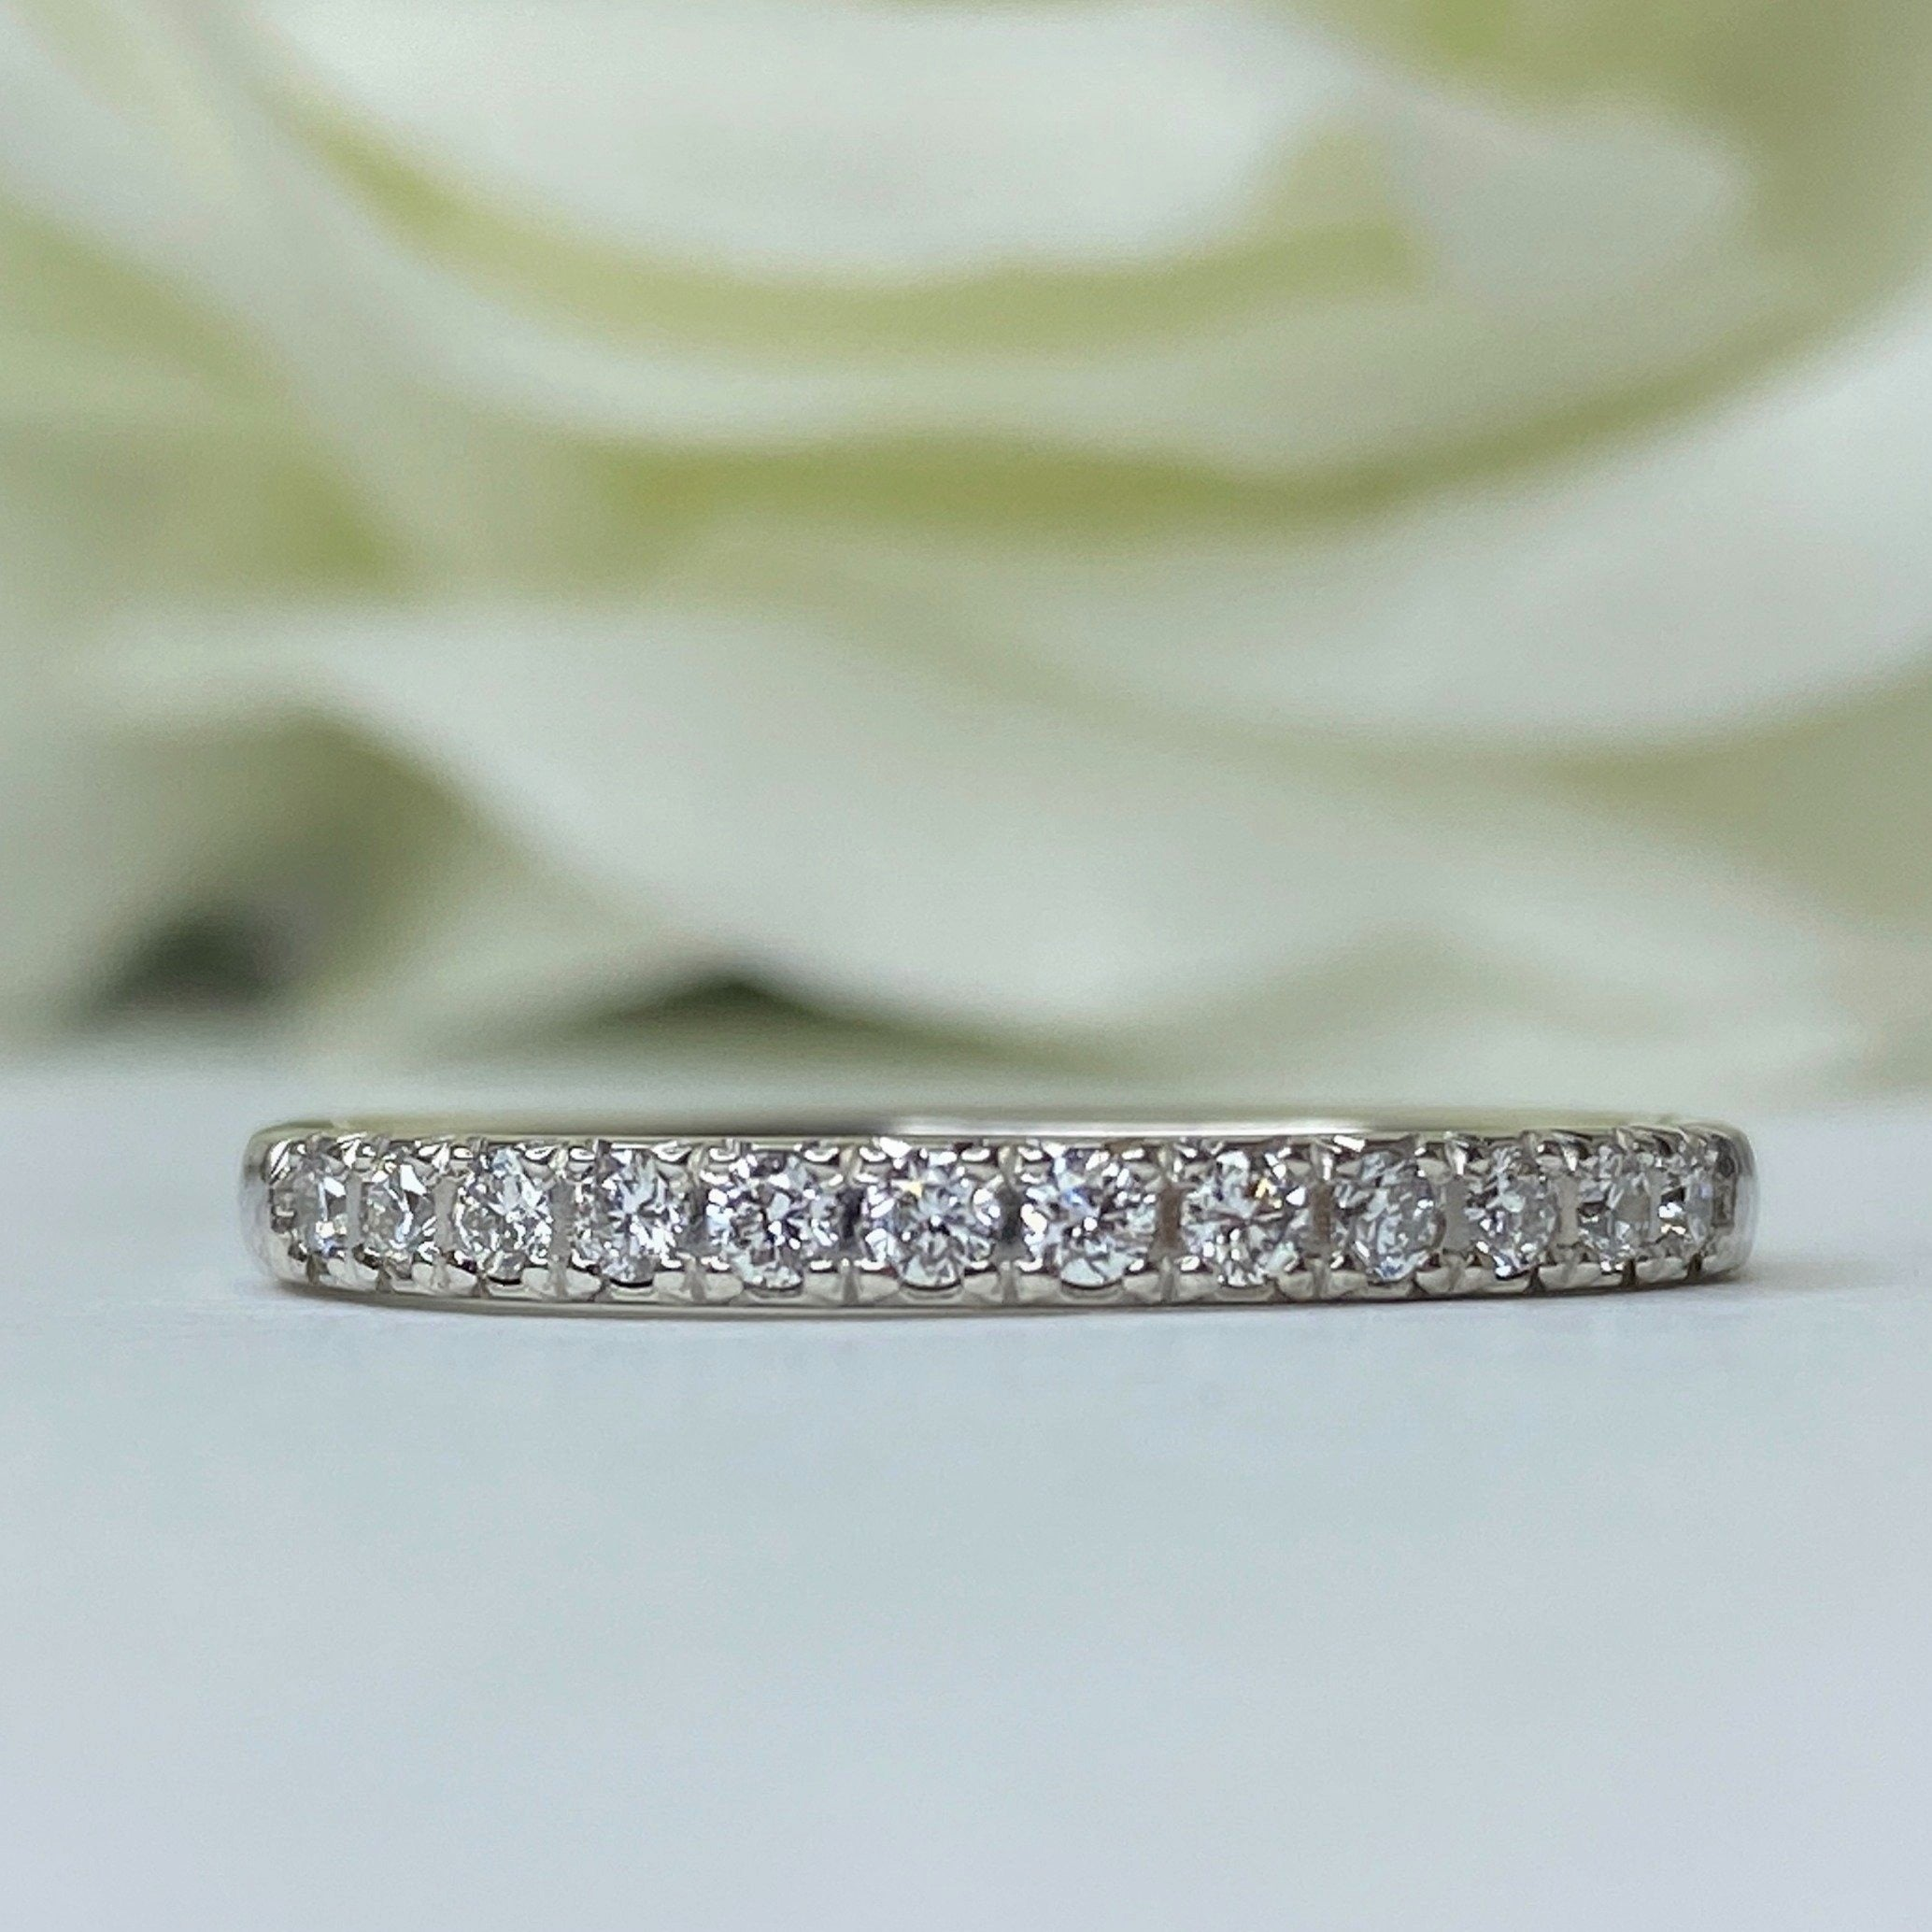 1/4 CT Lab Grown Diamond Band - WG